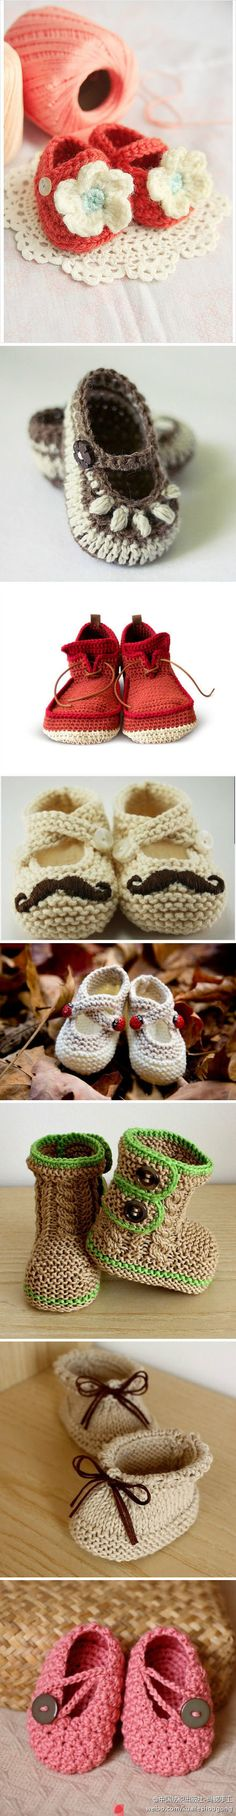 Crochet shoes; these are so cute! I'm going to learn how to make these for when I have a baby :)